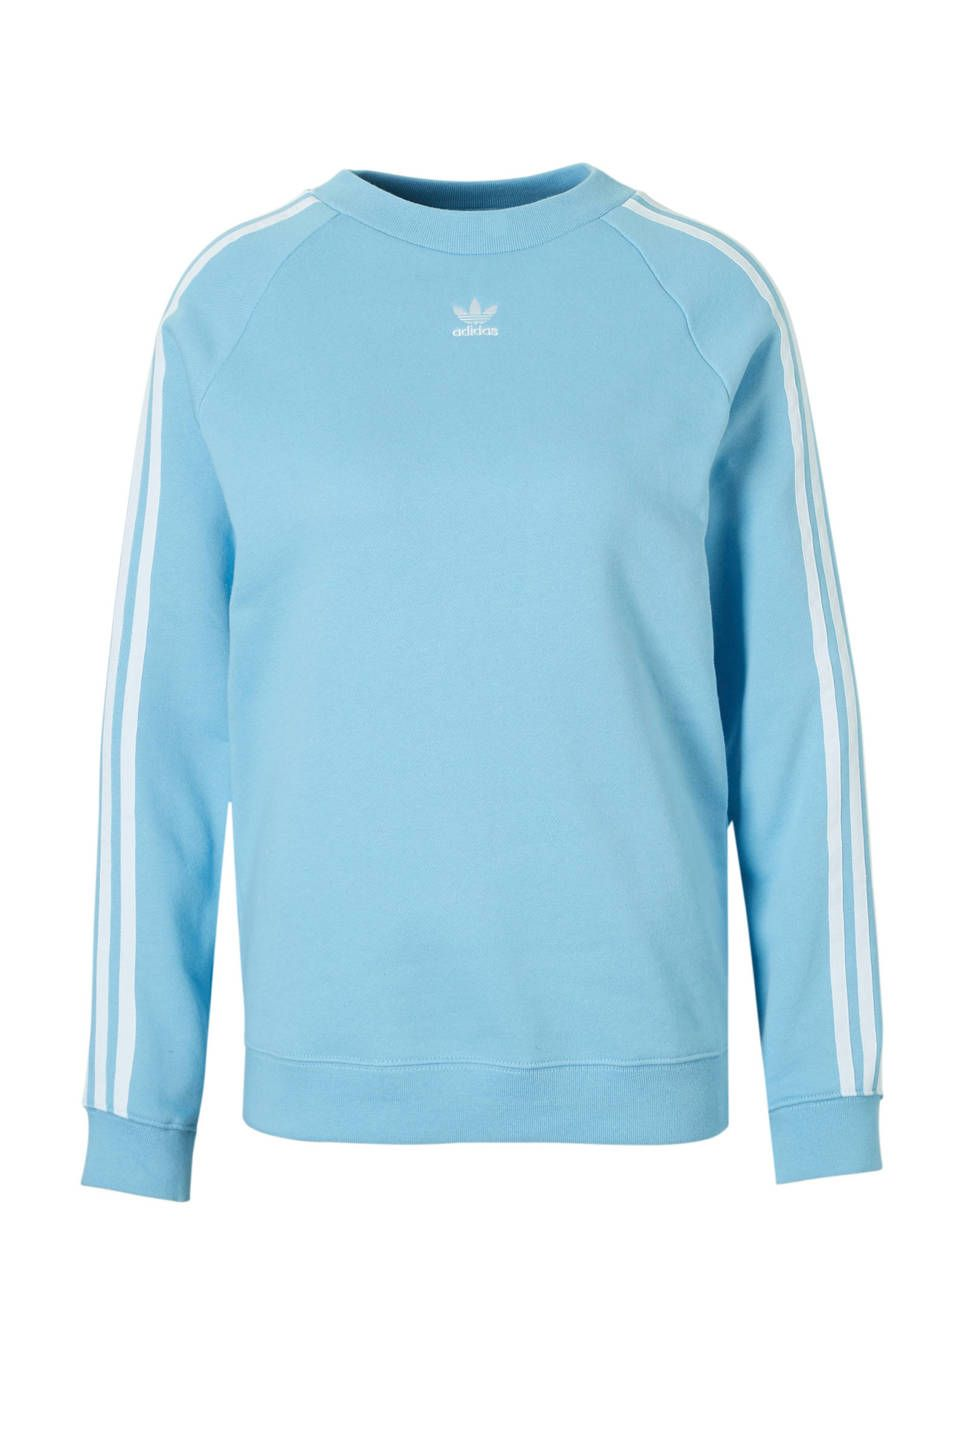 Sweater lichtblauw | Trui, Sweater, Addidas